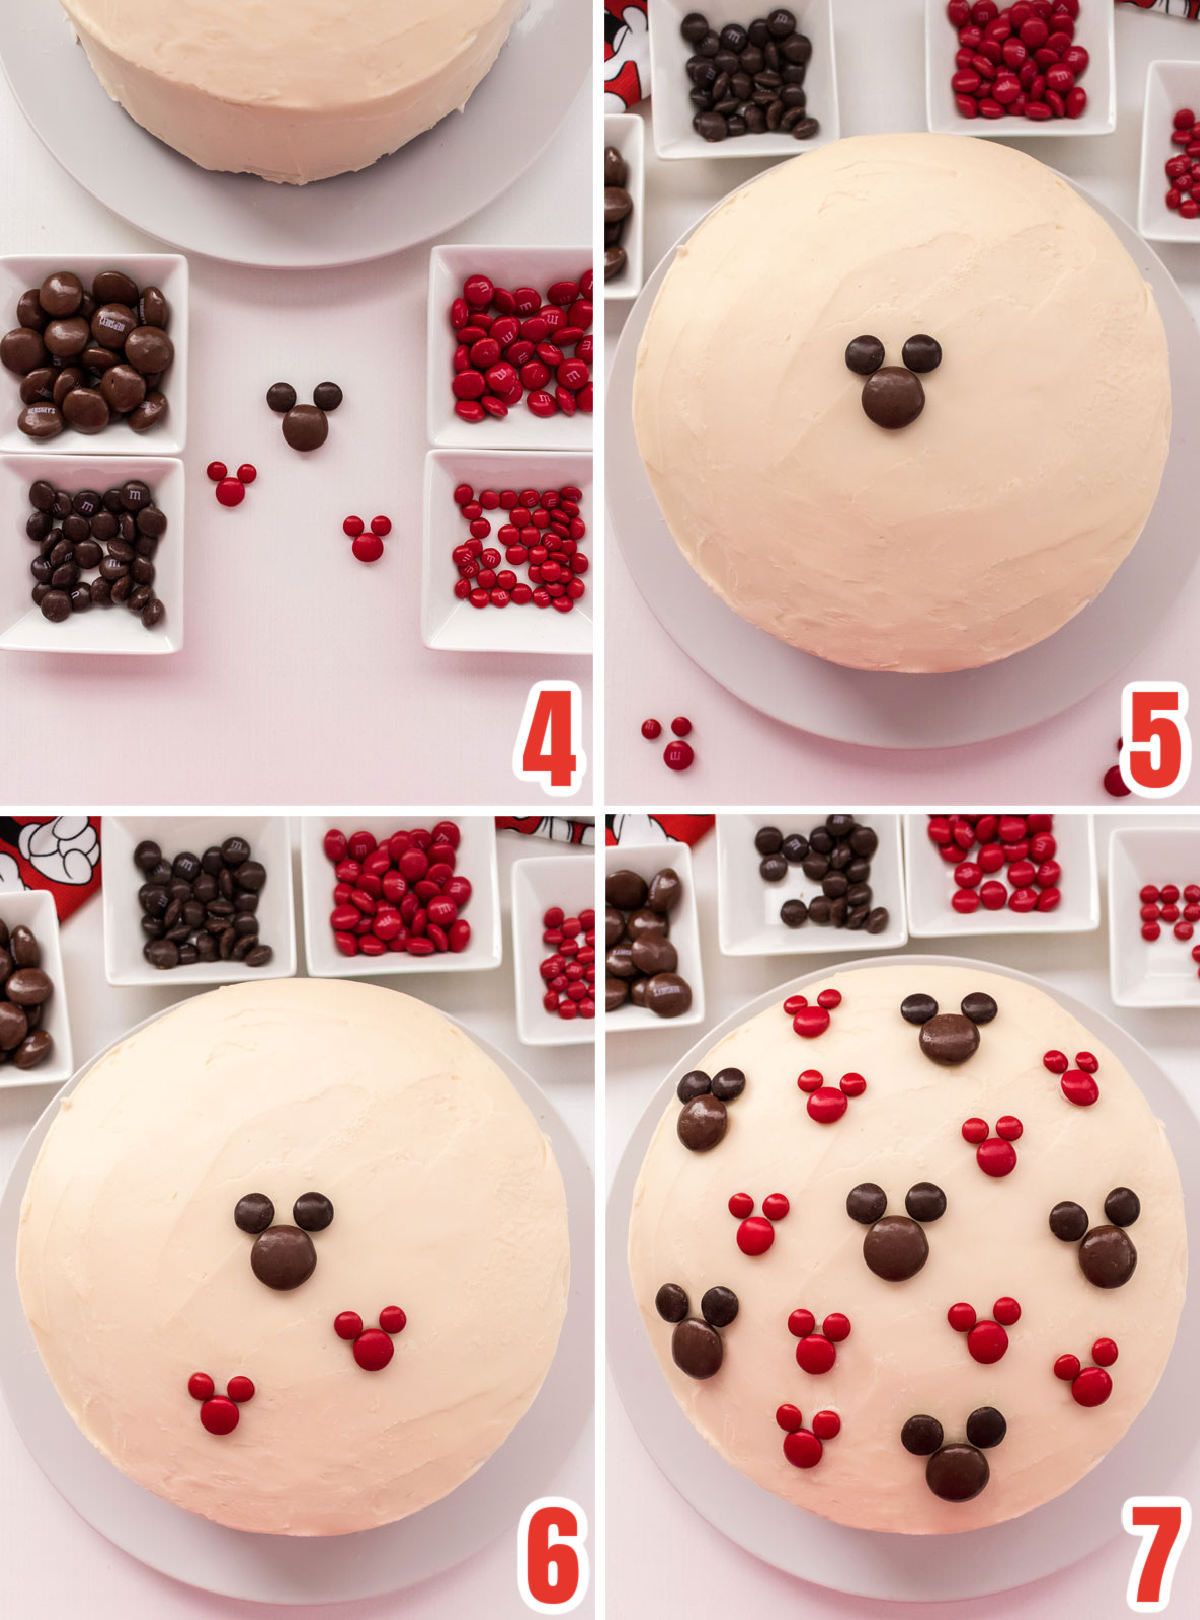 Collage image showing the steps for decorating the Easy Mickey Mouse Cake with M&M's.